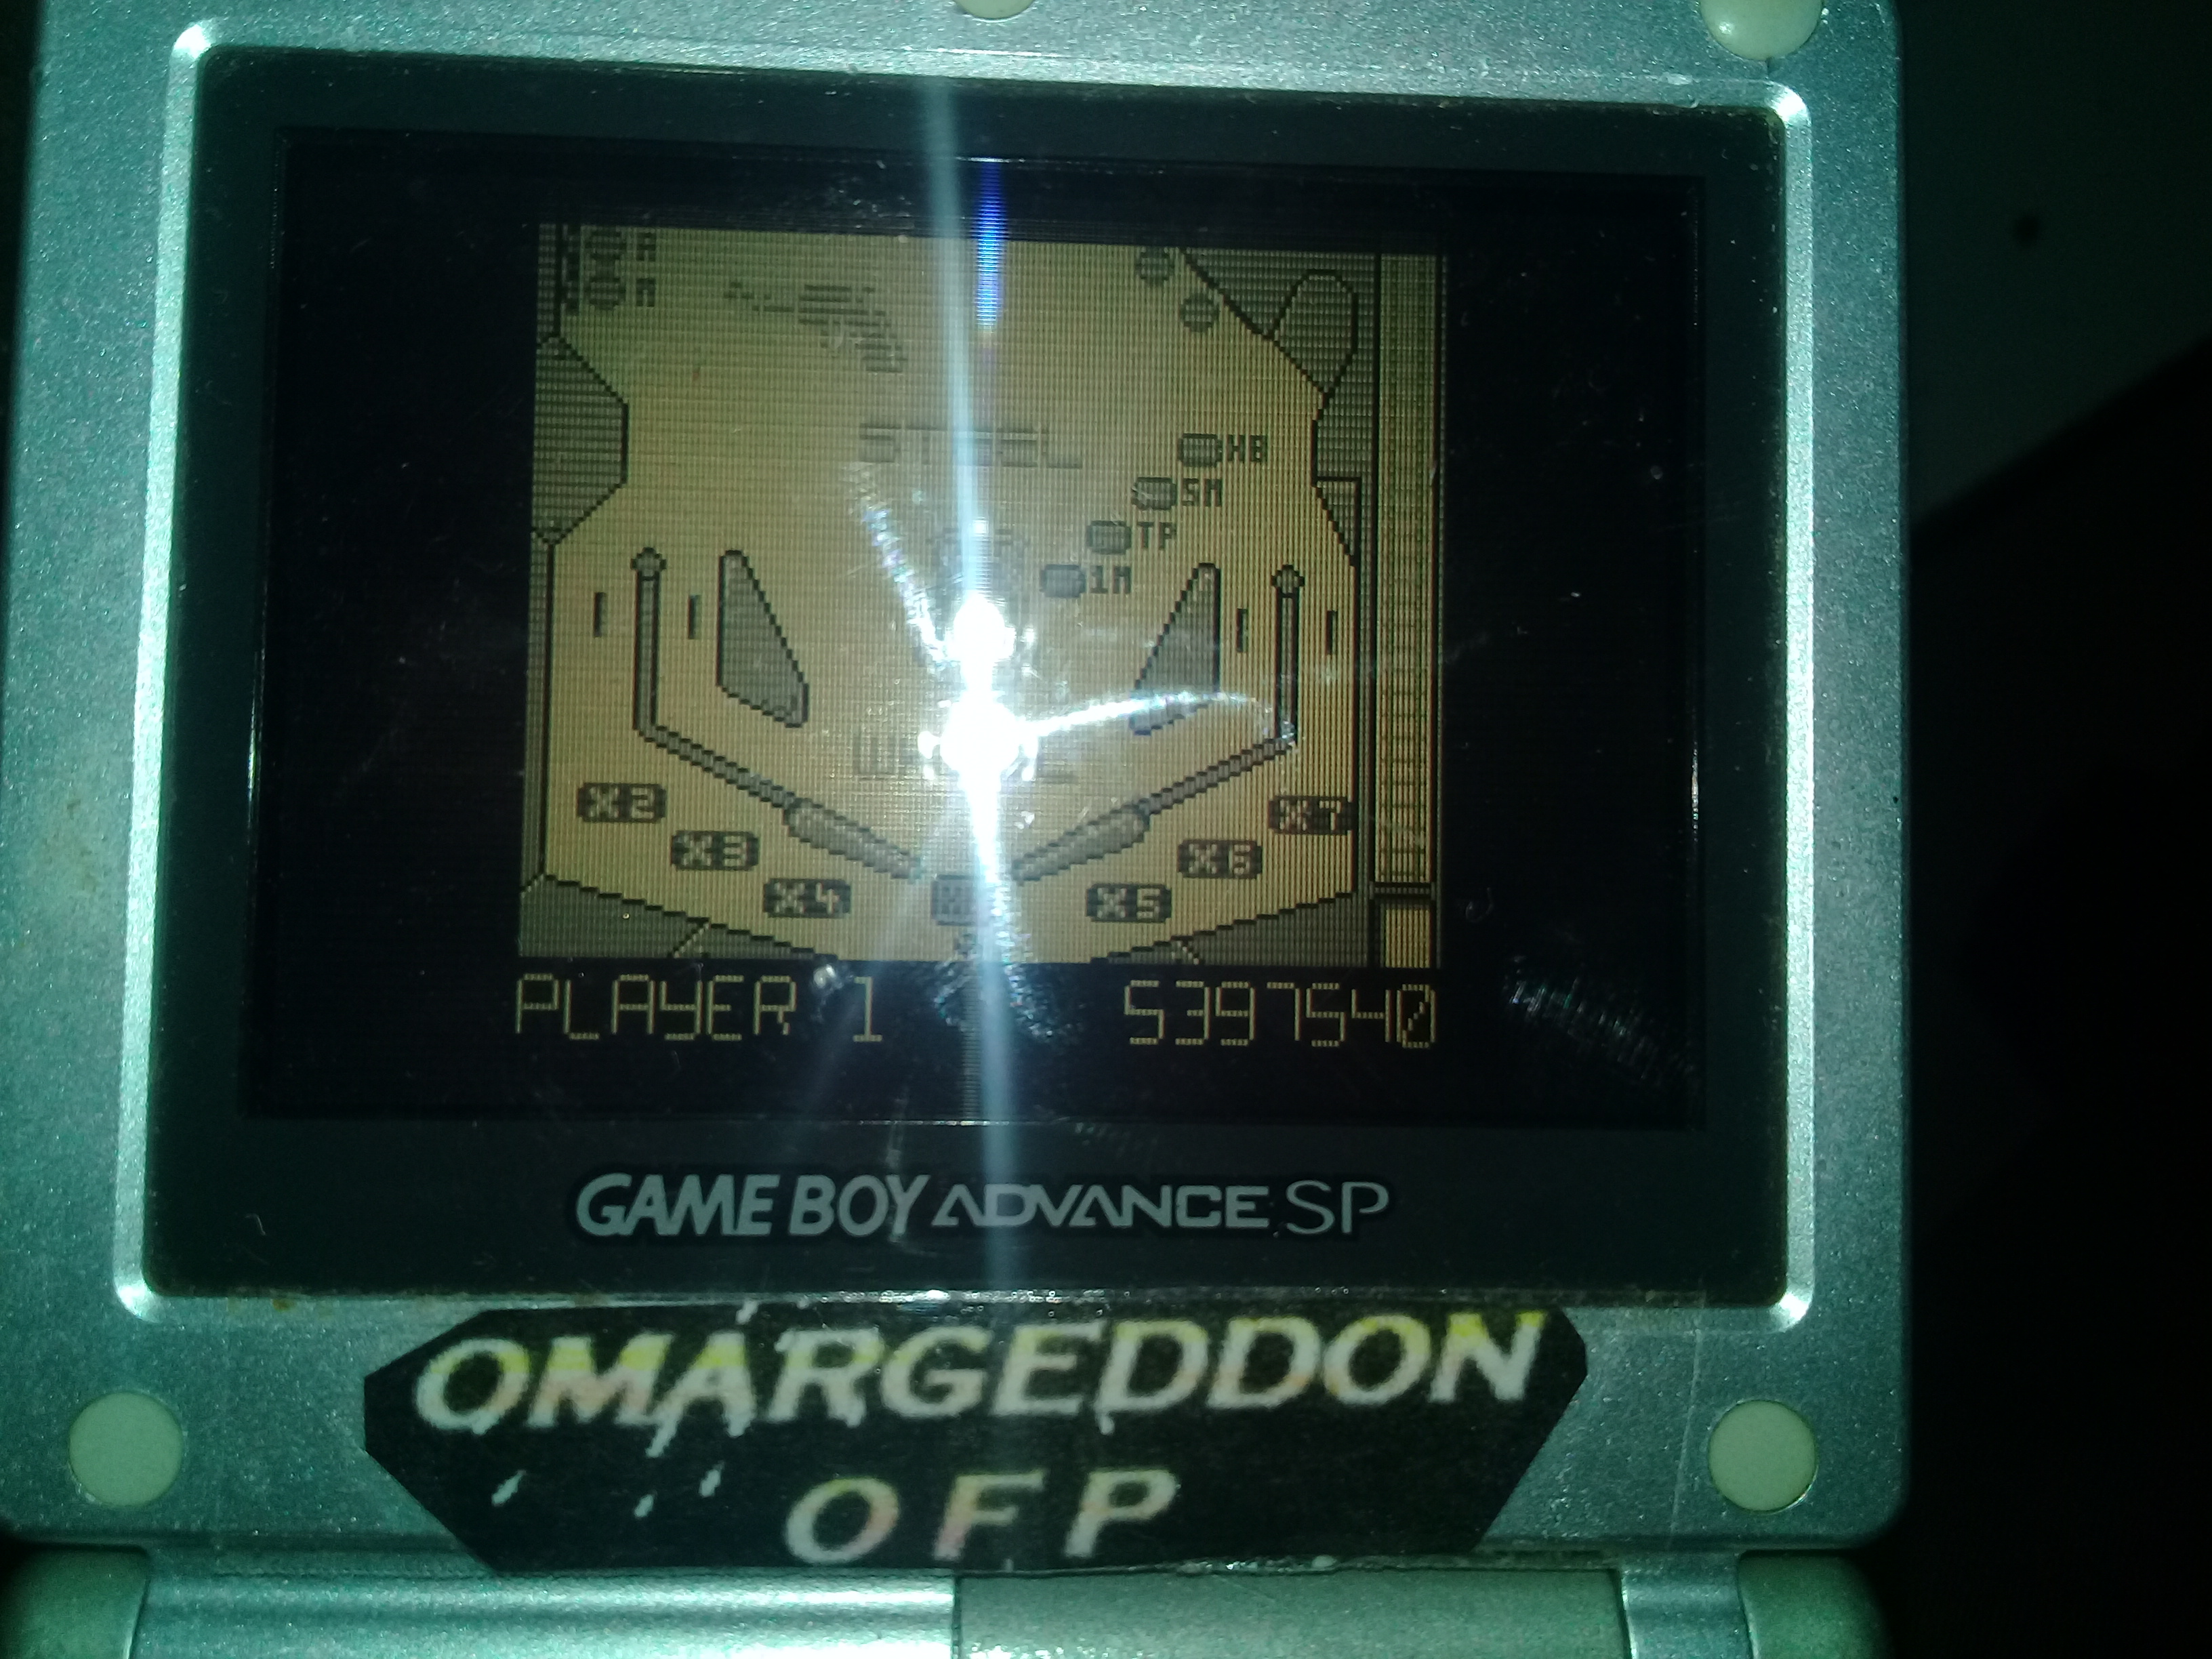 omargeddon: Pinball Dreams: Steel Wheel (Game Boy) 5,397,540 points on 2018-12-01 18:16:35